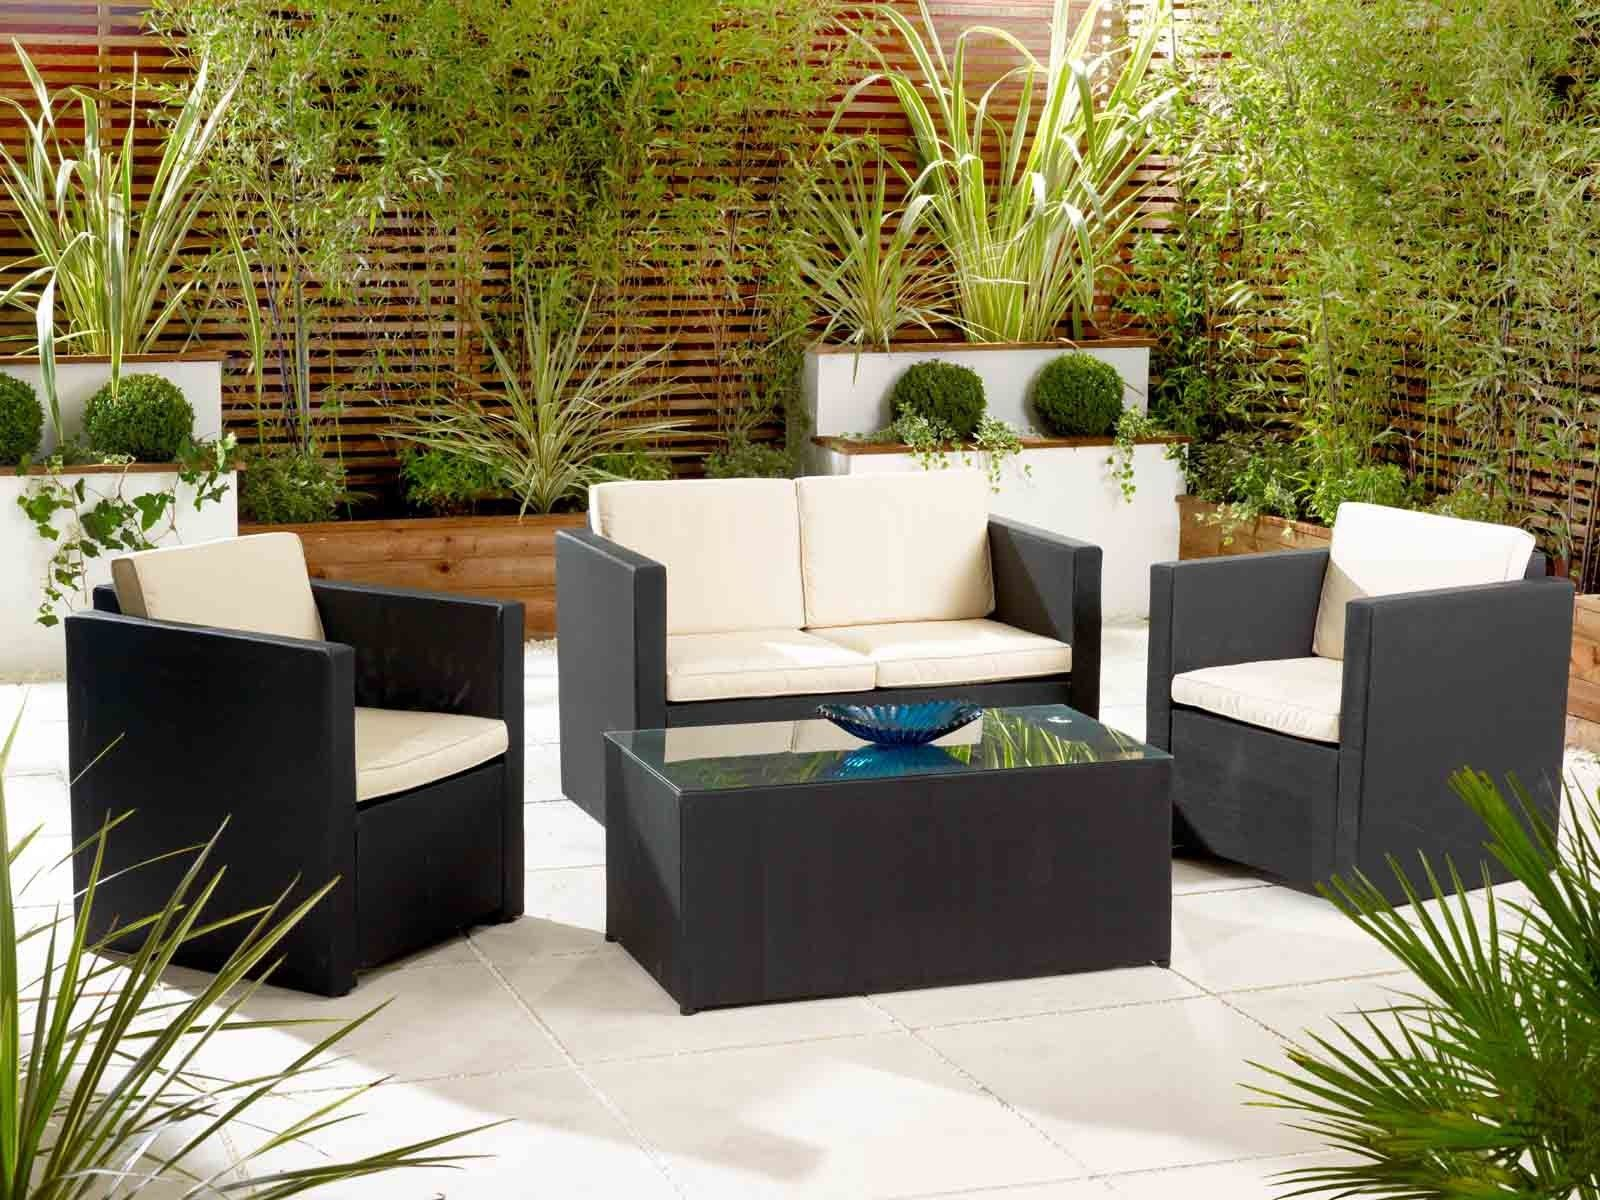 Exterior Design Furniture Cute Outdoor Patio Furniture Wicker With White Cushion De Outdoor Balcony Furniture Garden Furniture Inspiration Backyard Furniture